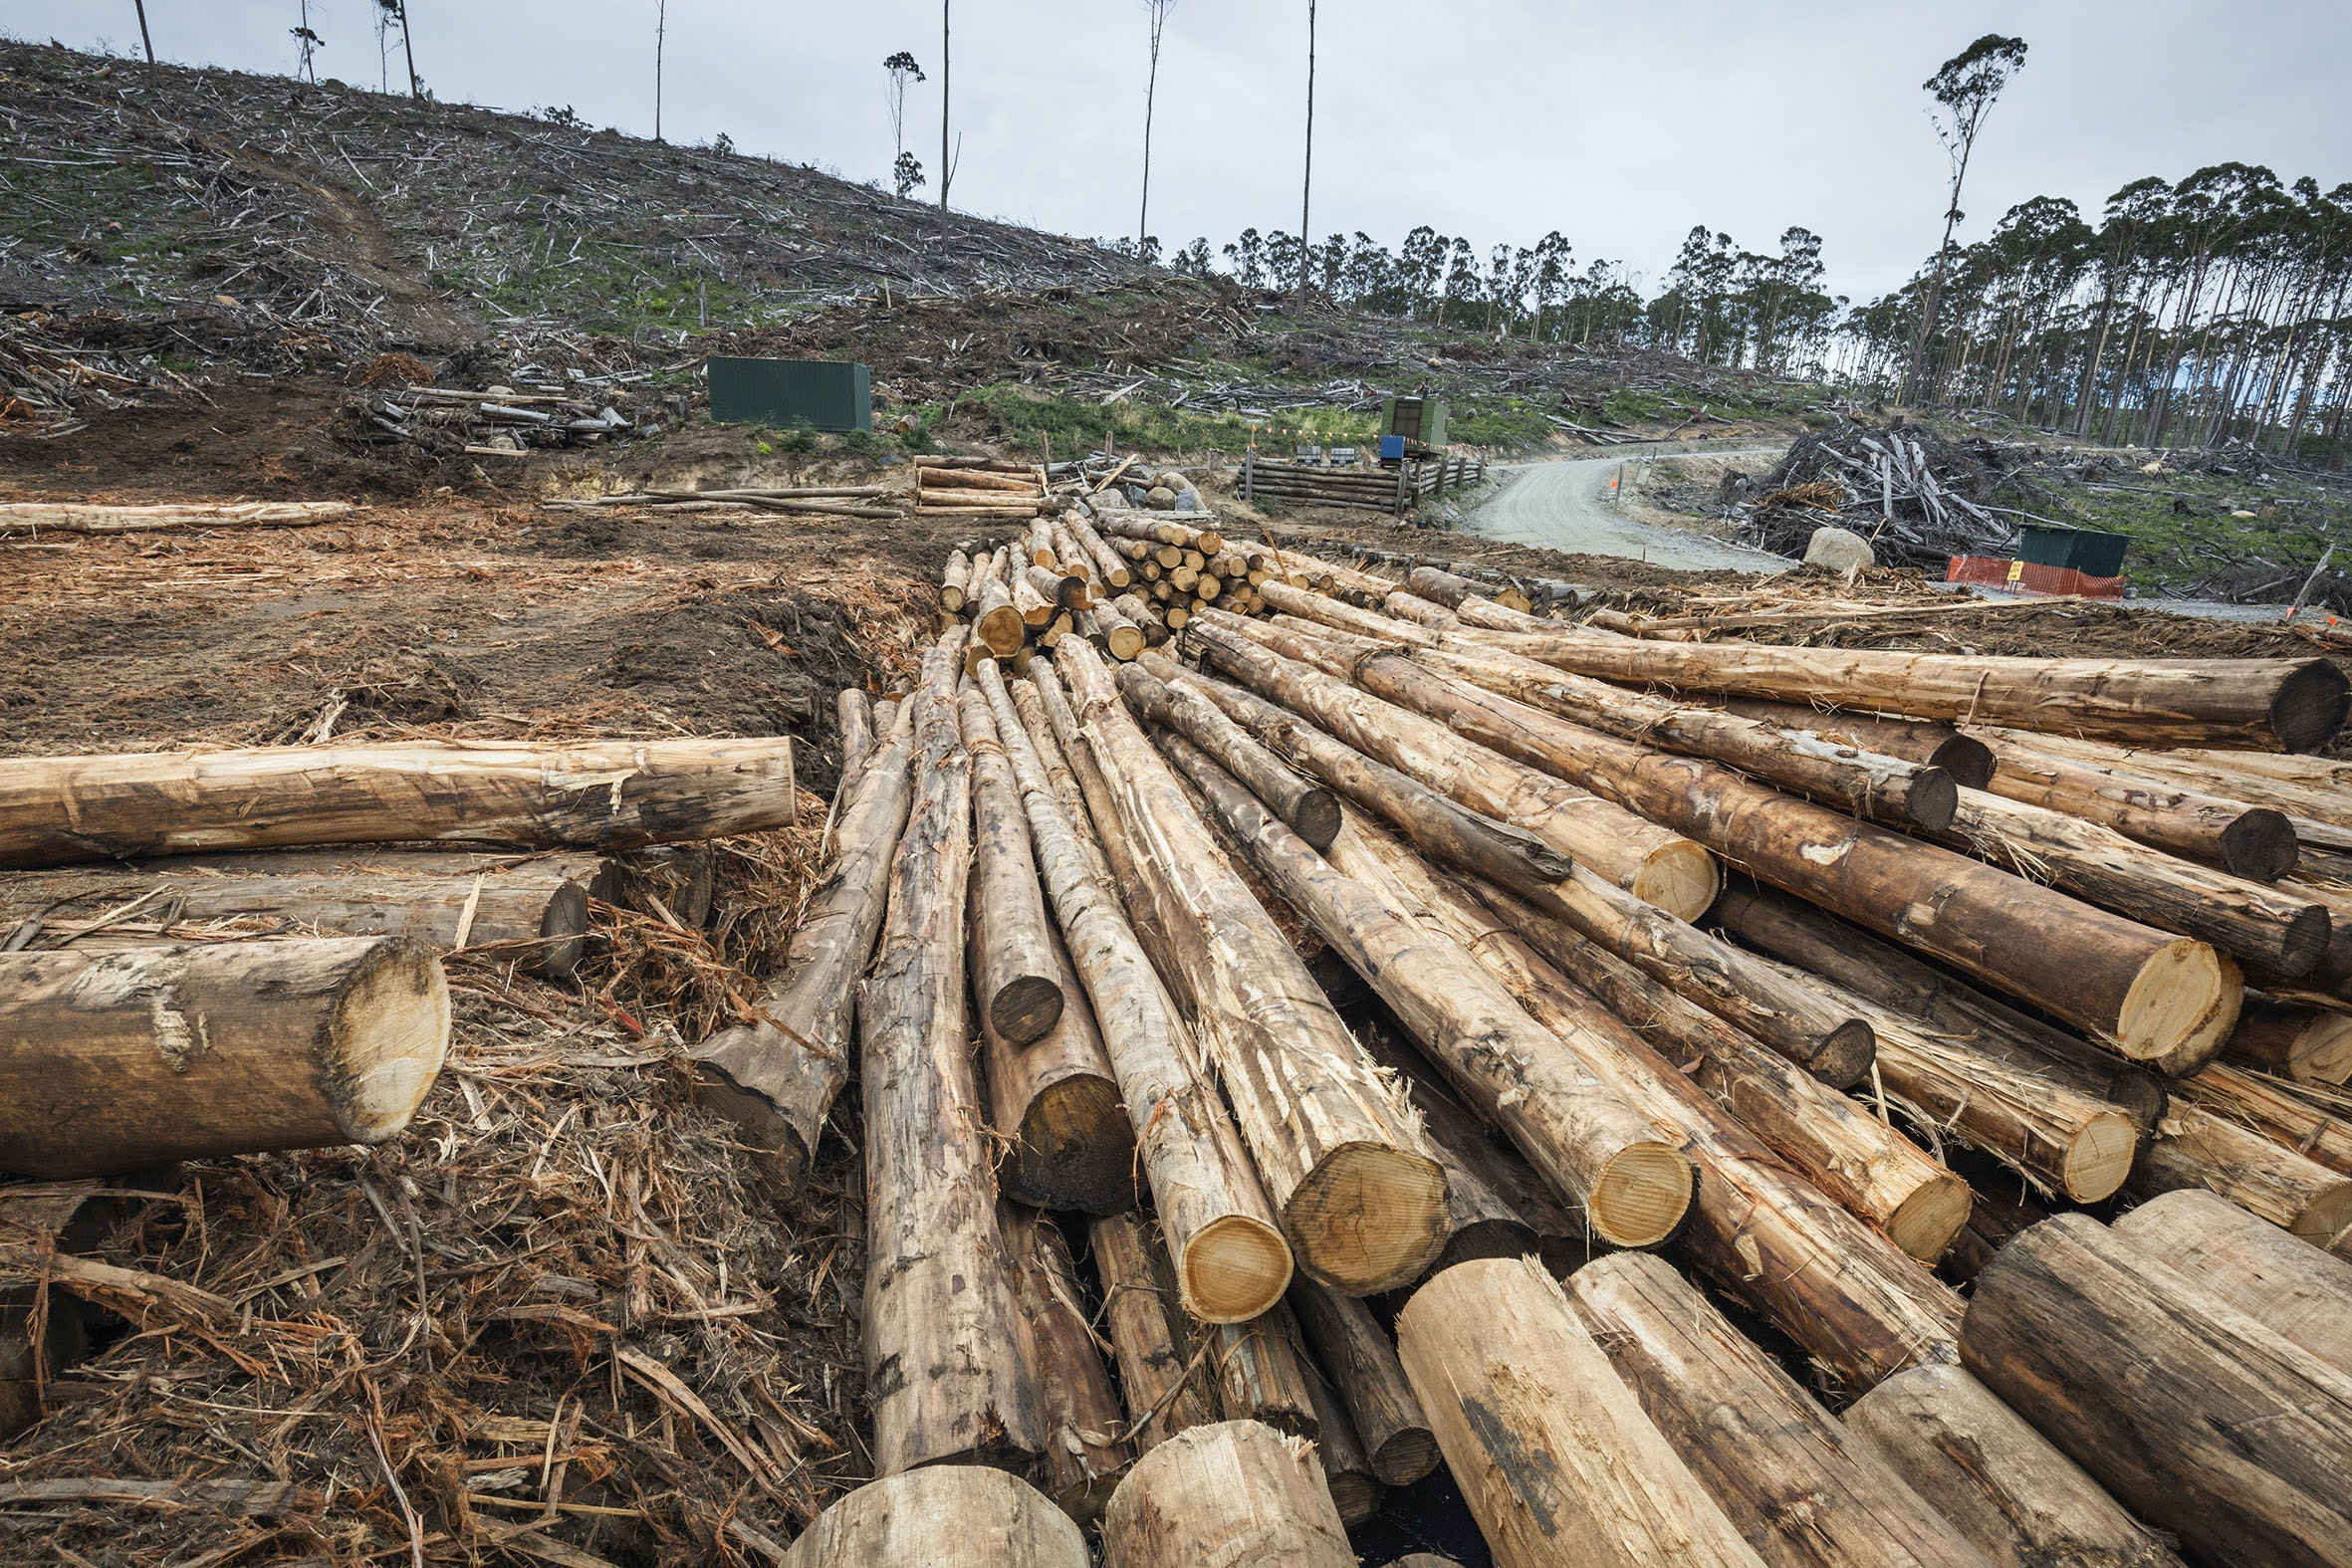 Logged native forests mostly end up in landfill, not in buildings and furniture